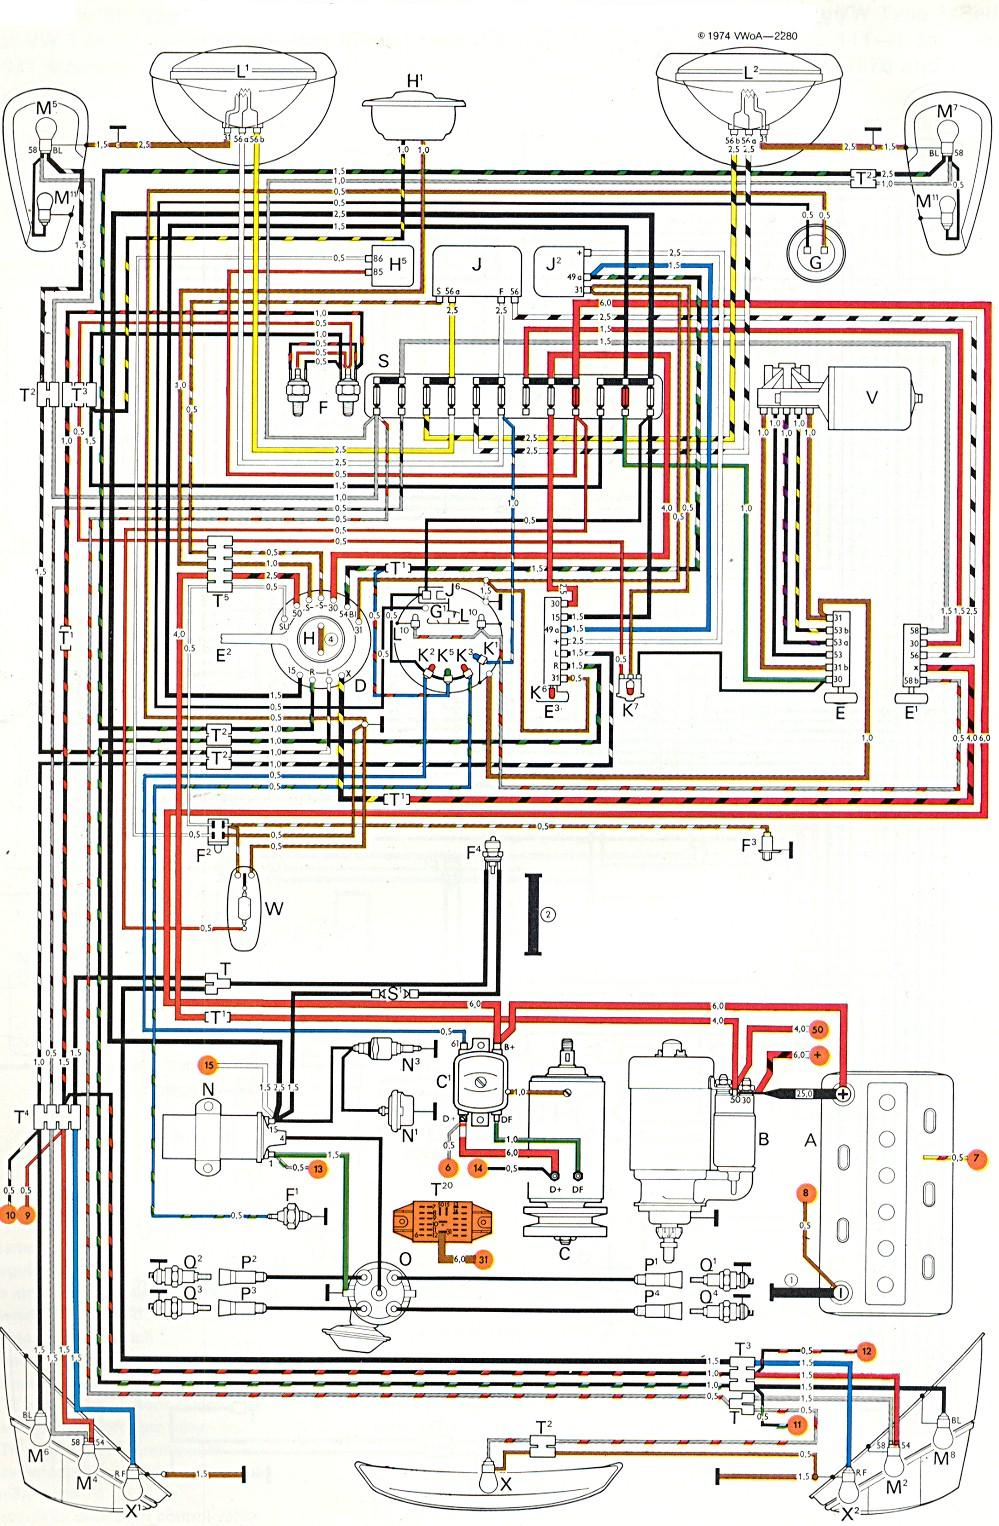 1971 Vw Alternator Wiring Diagram - Wiring Info •